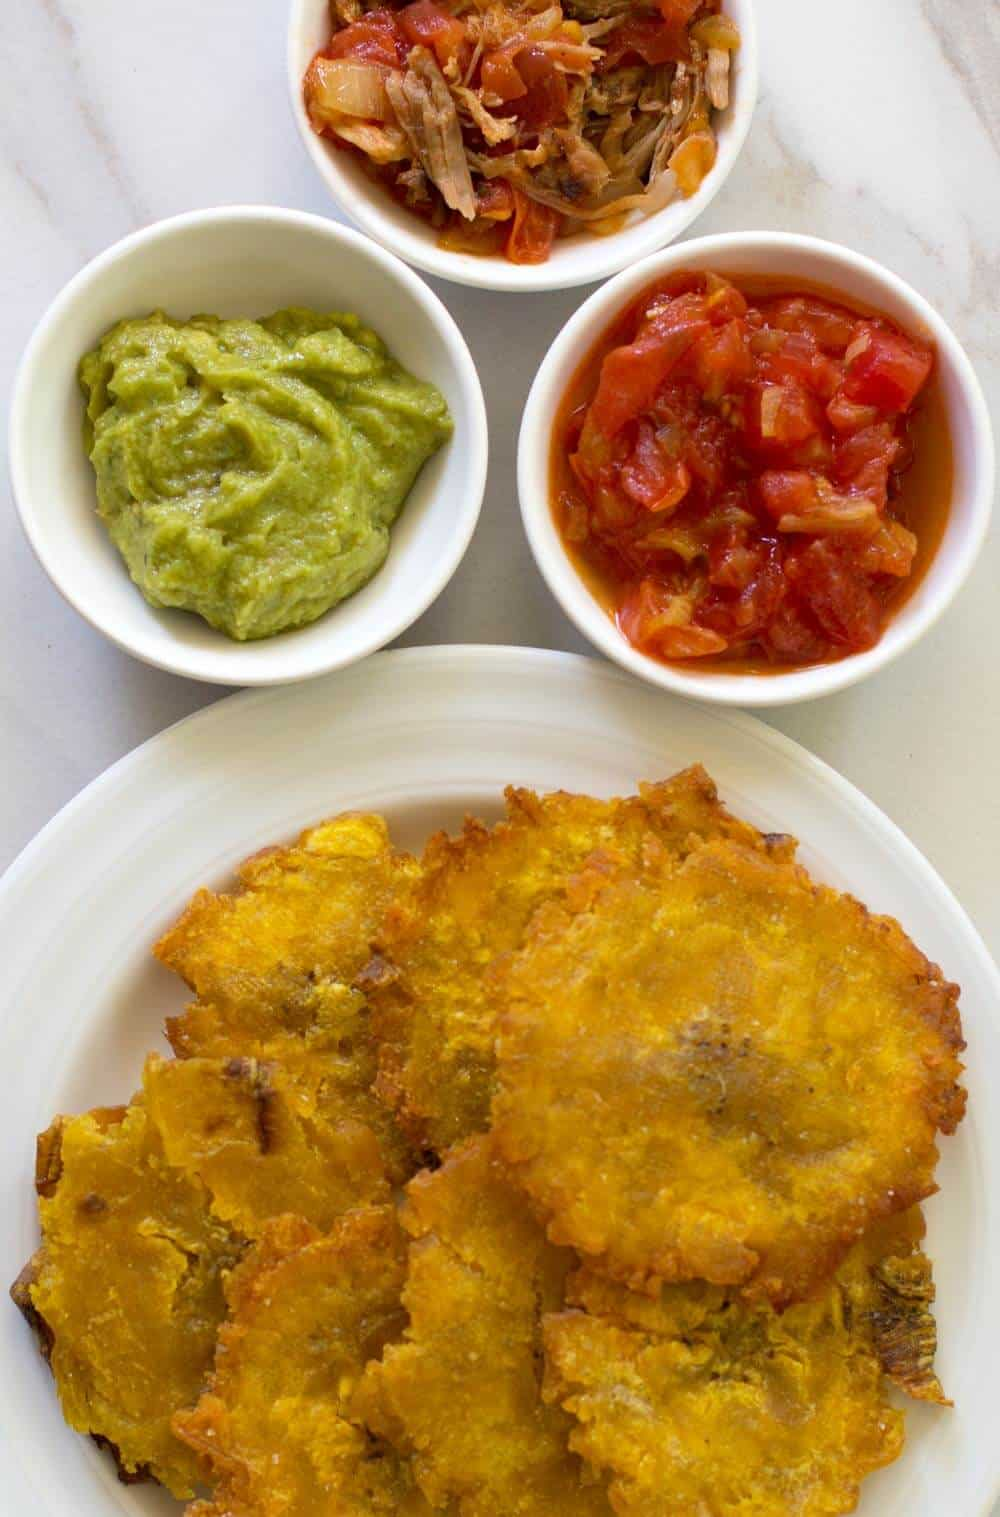 patagones or green plantains done on plate, with bowls of toppings.